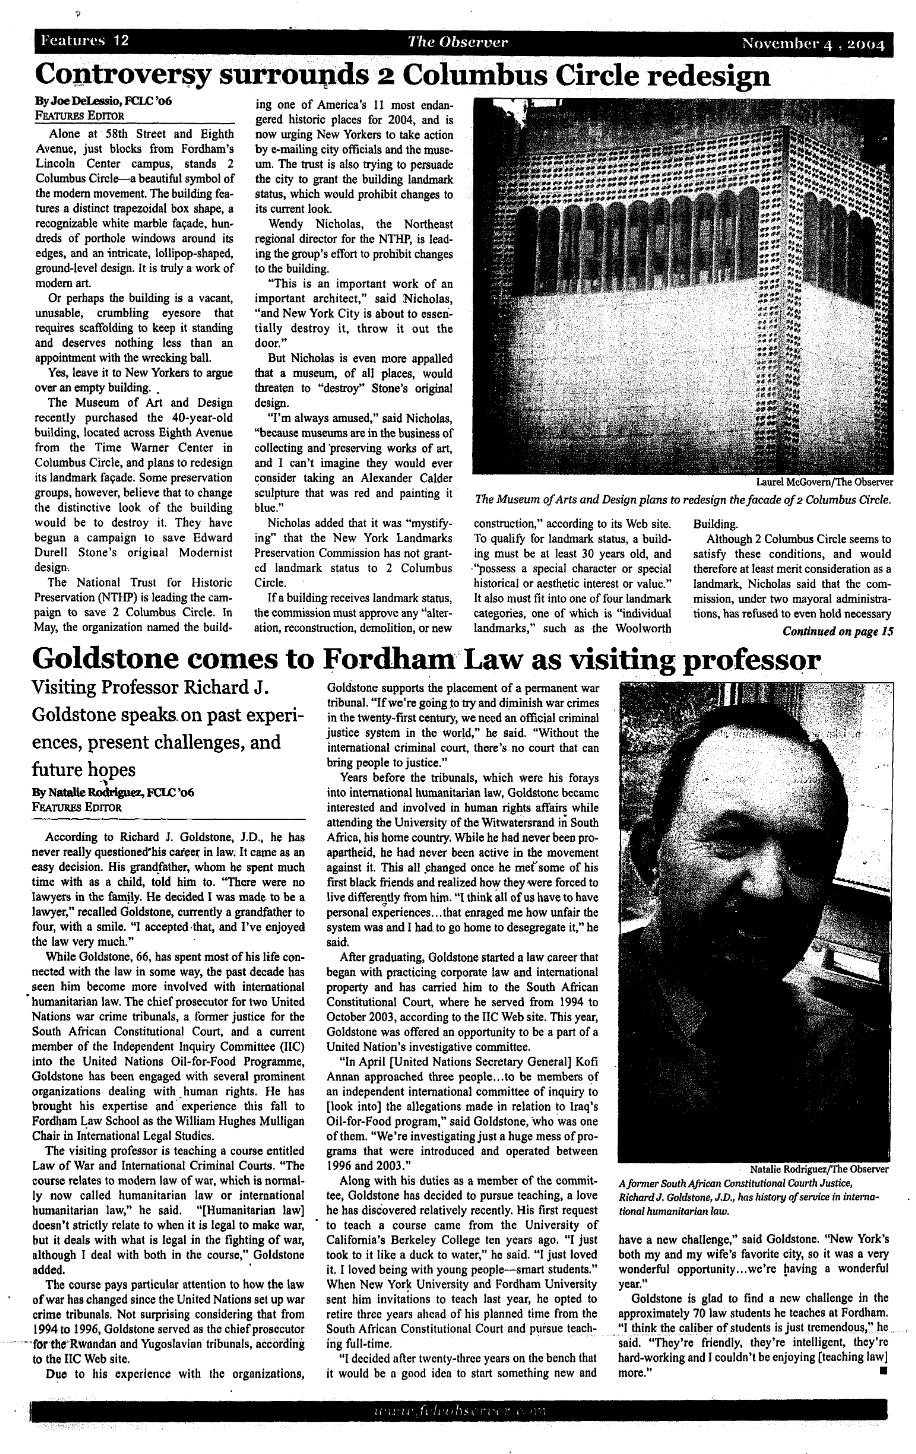 scanned image of a newspaper page where the bylines of joe delessio and natalie rodriquez both appear